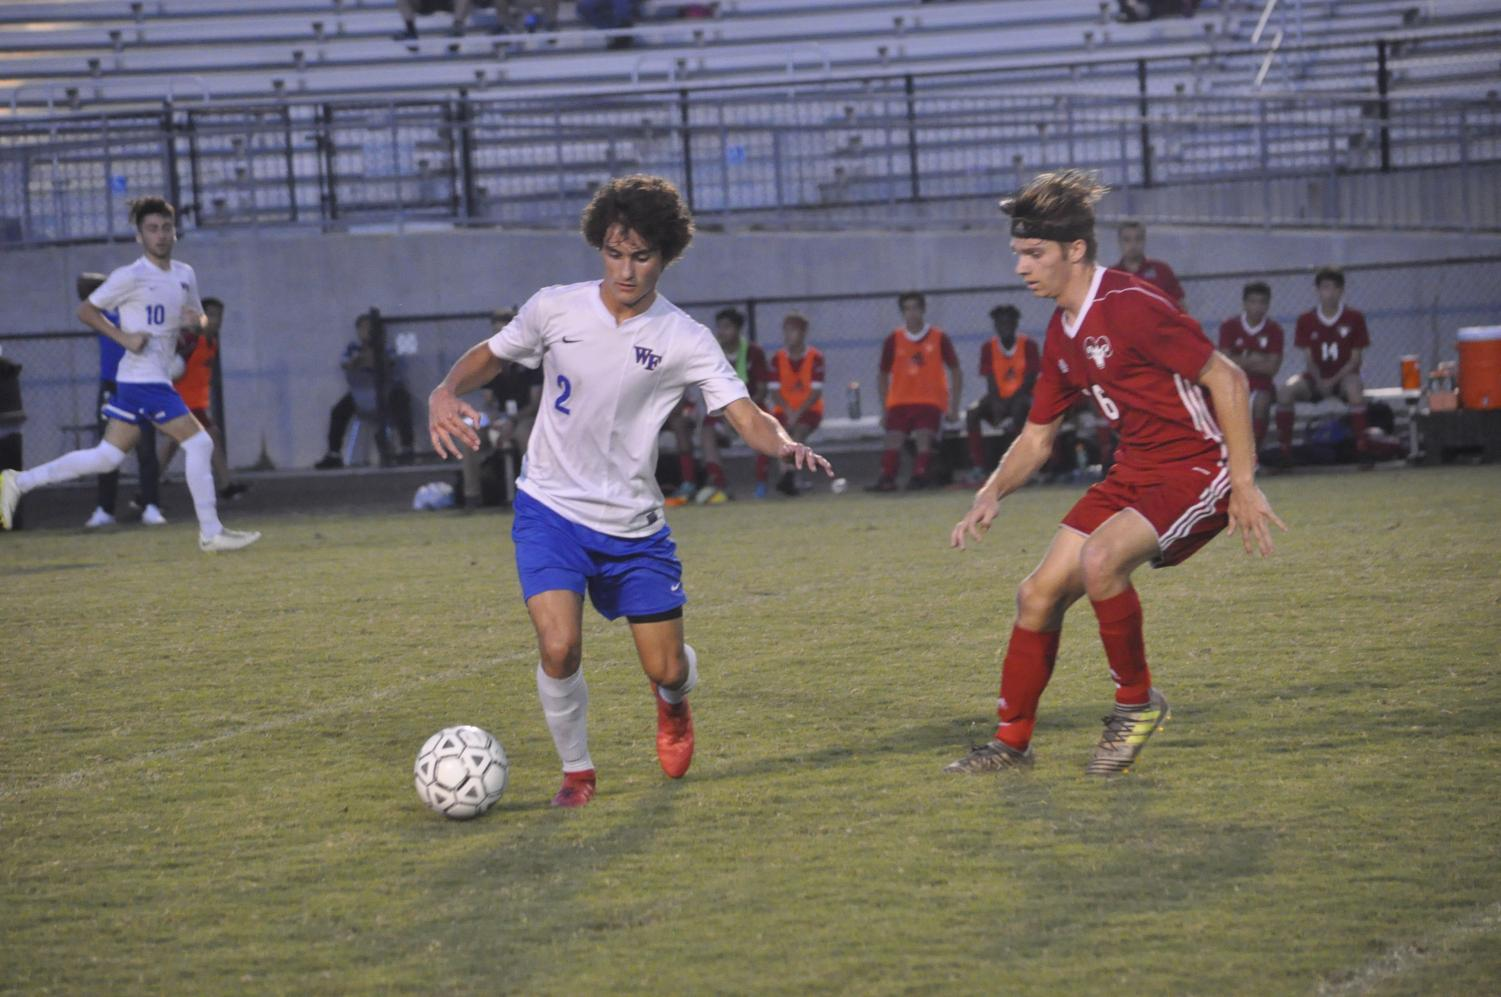 Sophomore Chris Steg carries the ball up the field in a conference match against Rolesville. Steg was the leading goal scorer for the Cougars, seeing the back of the net 25 times this season.